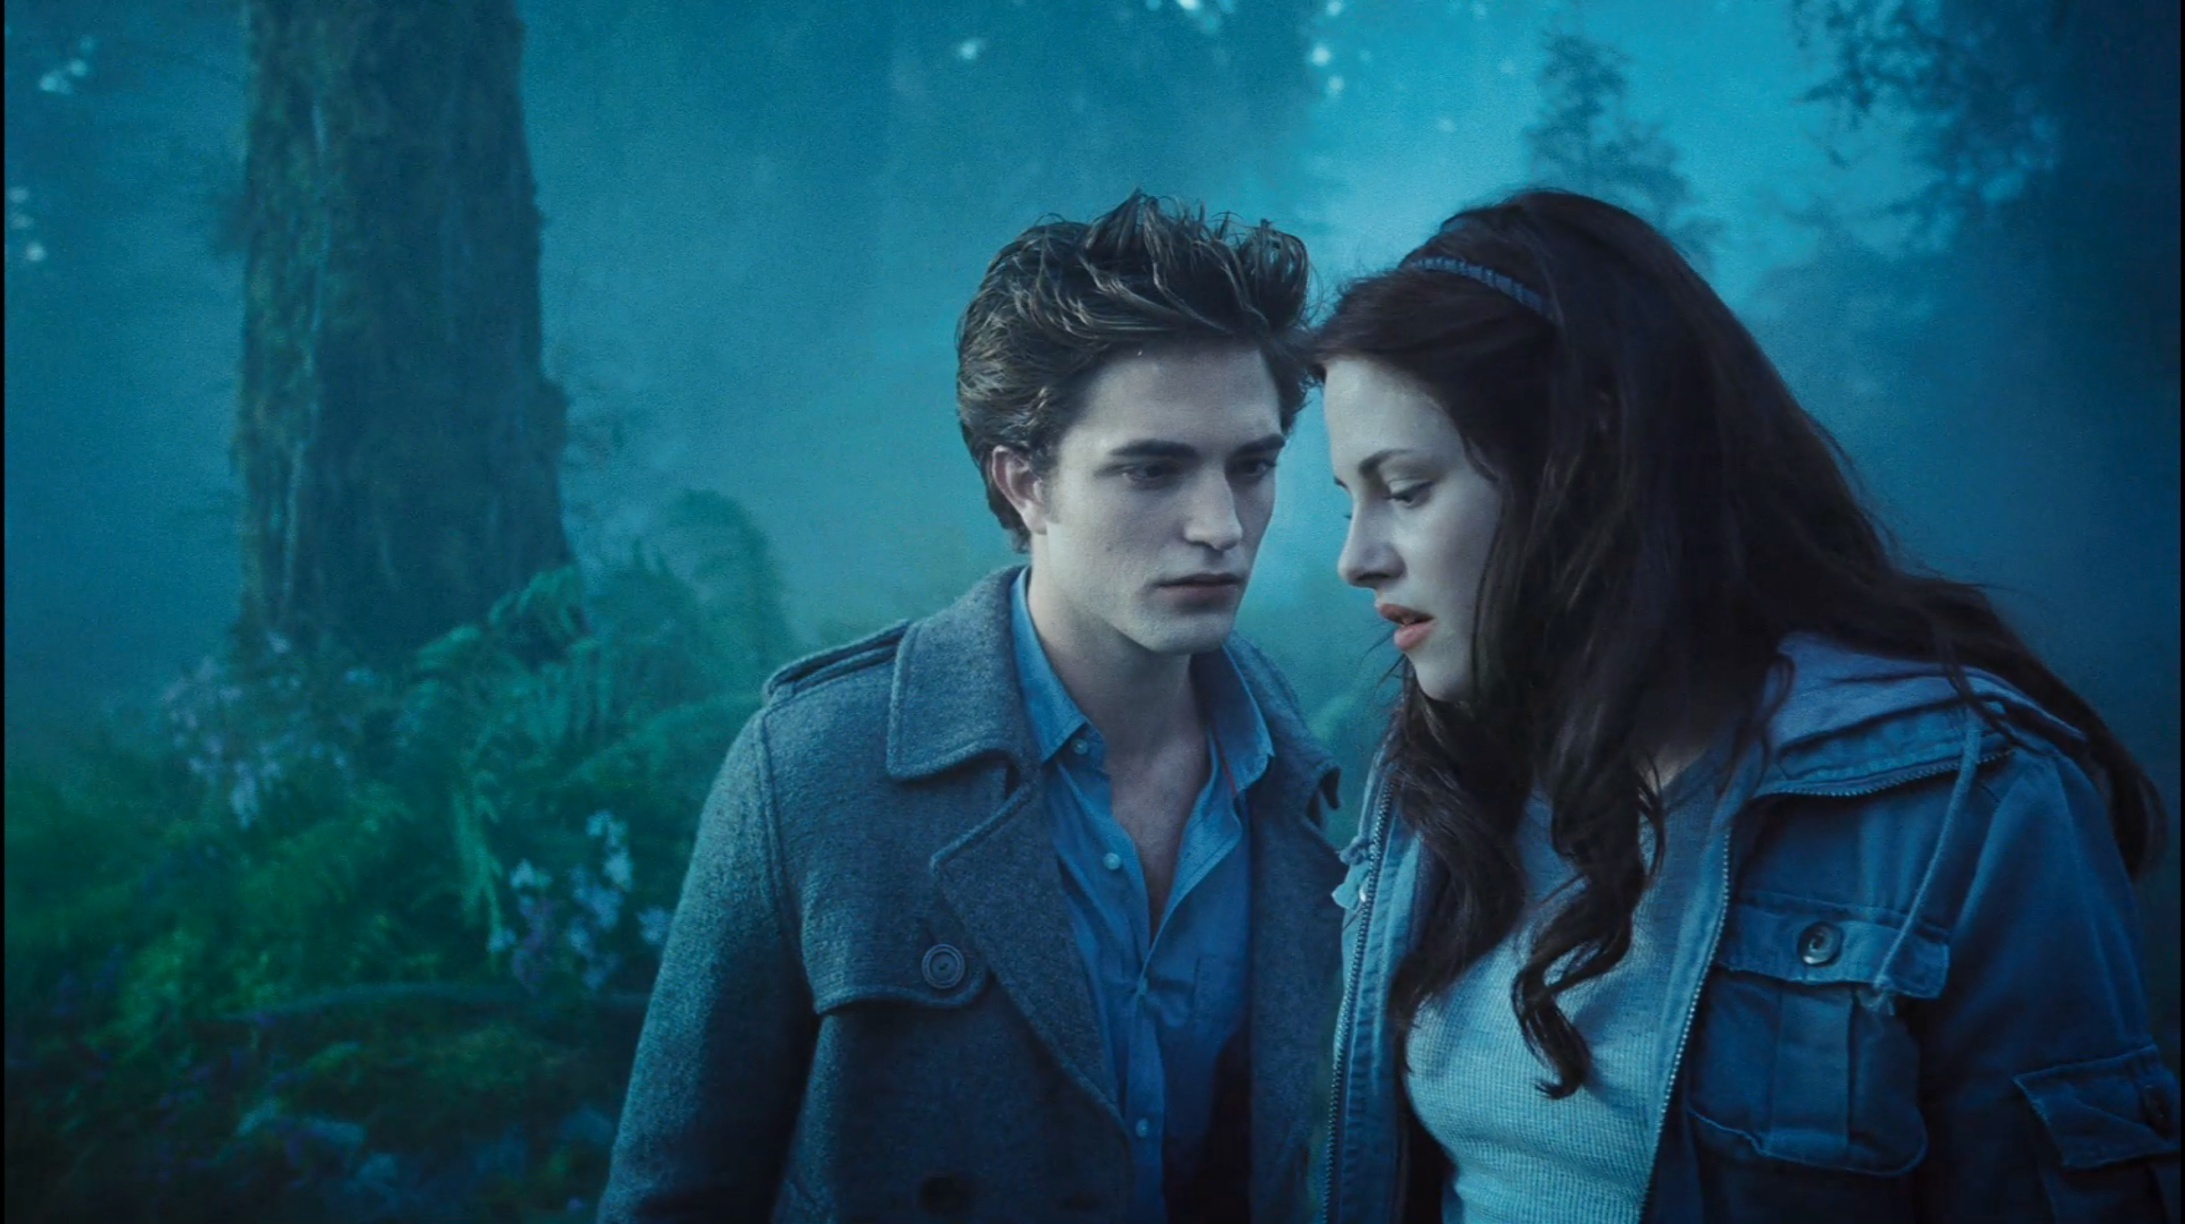 Who is edward cullen dating now